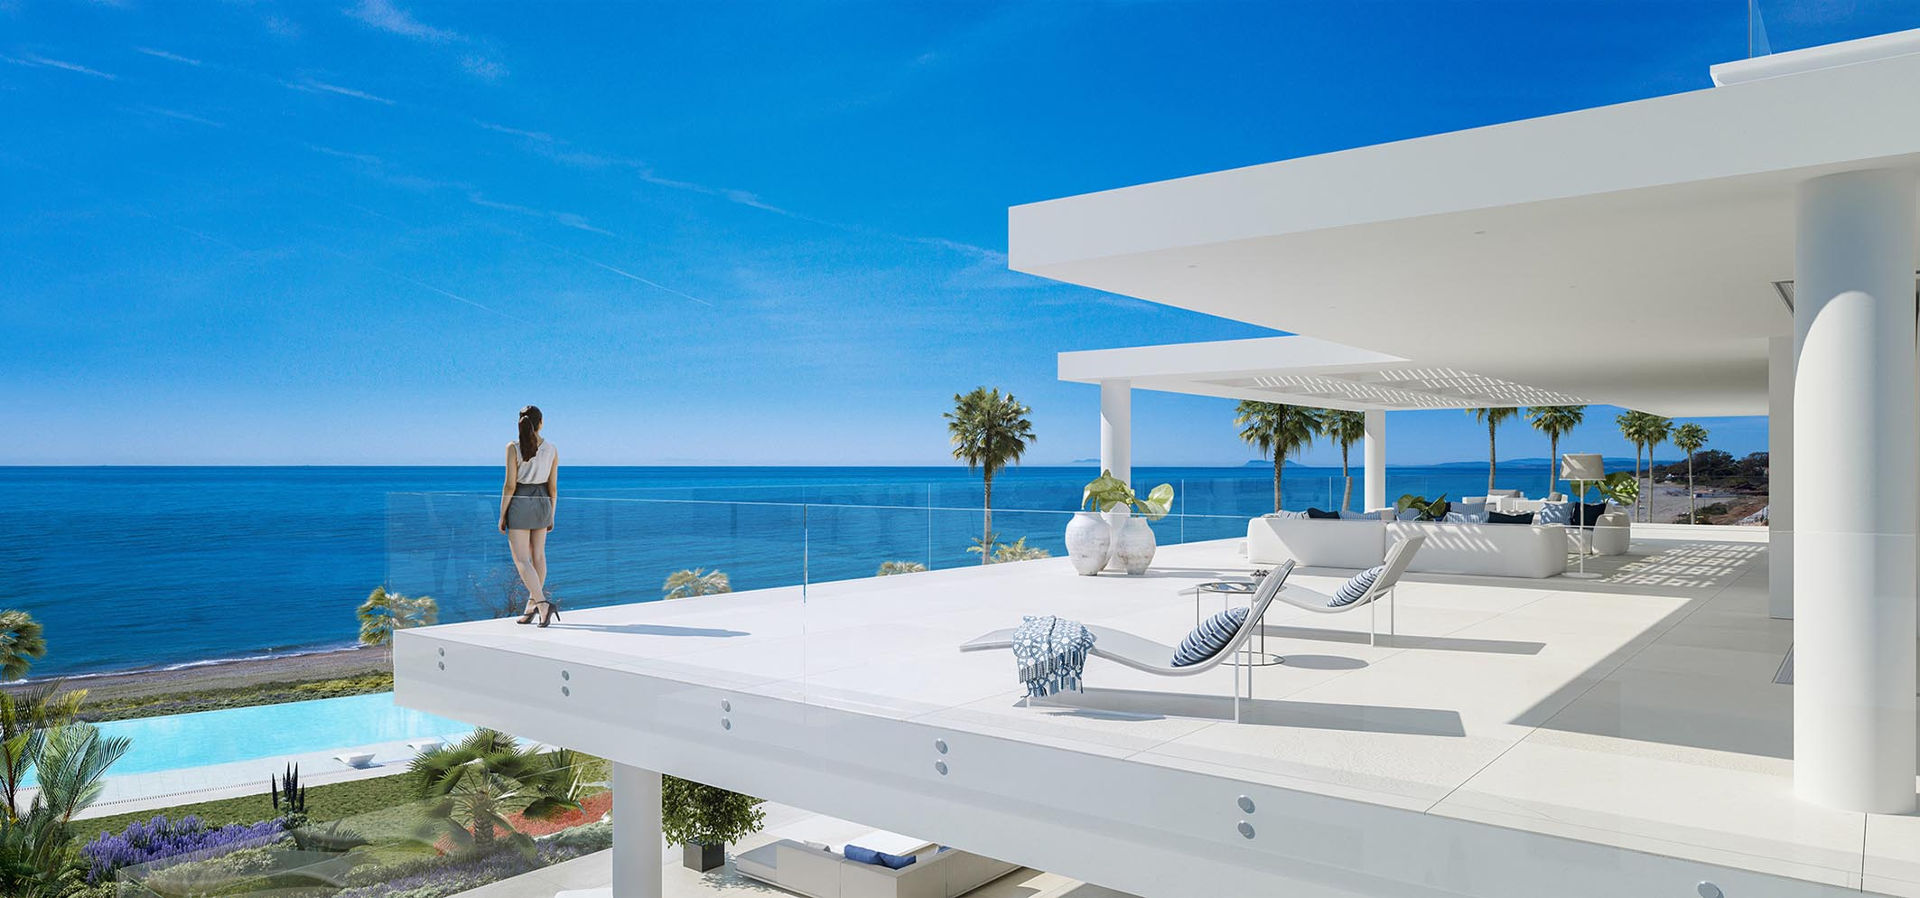 Emare Estepona front line beach apartment for sale with endless sea views